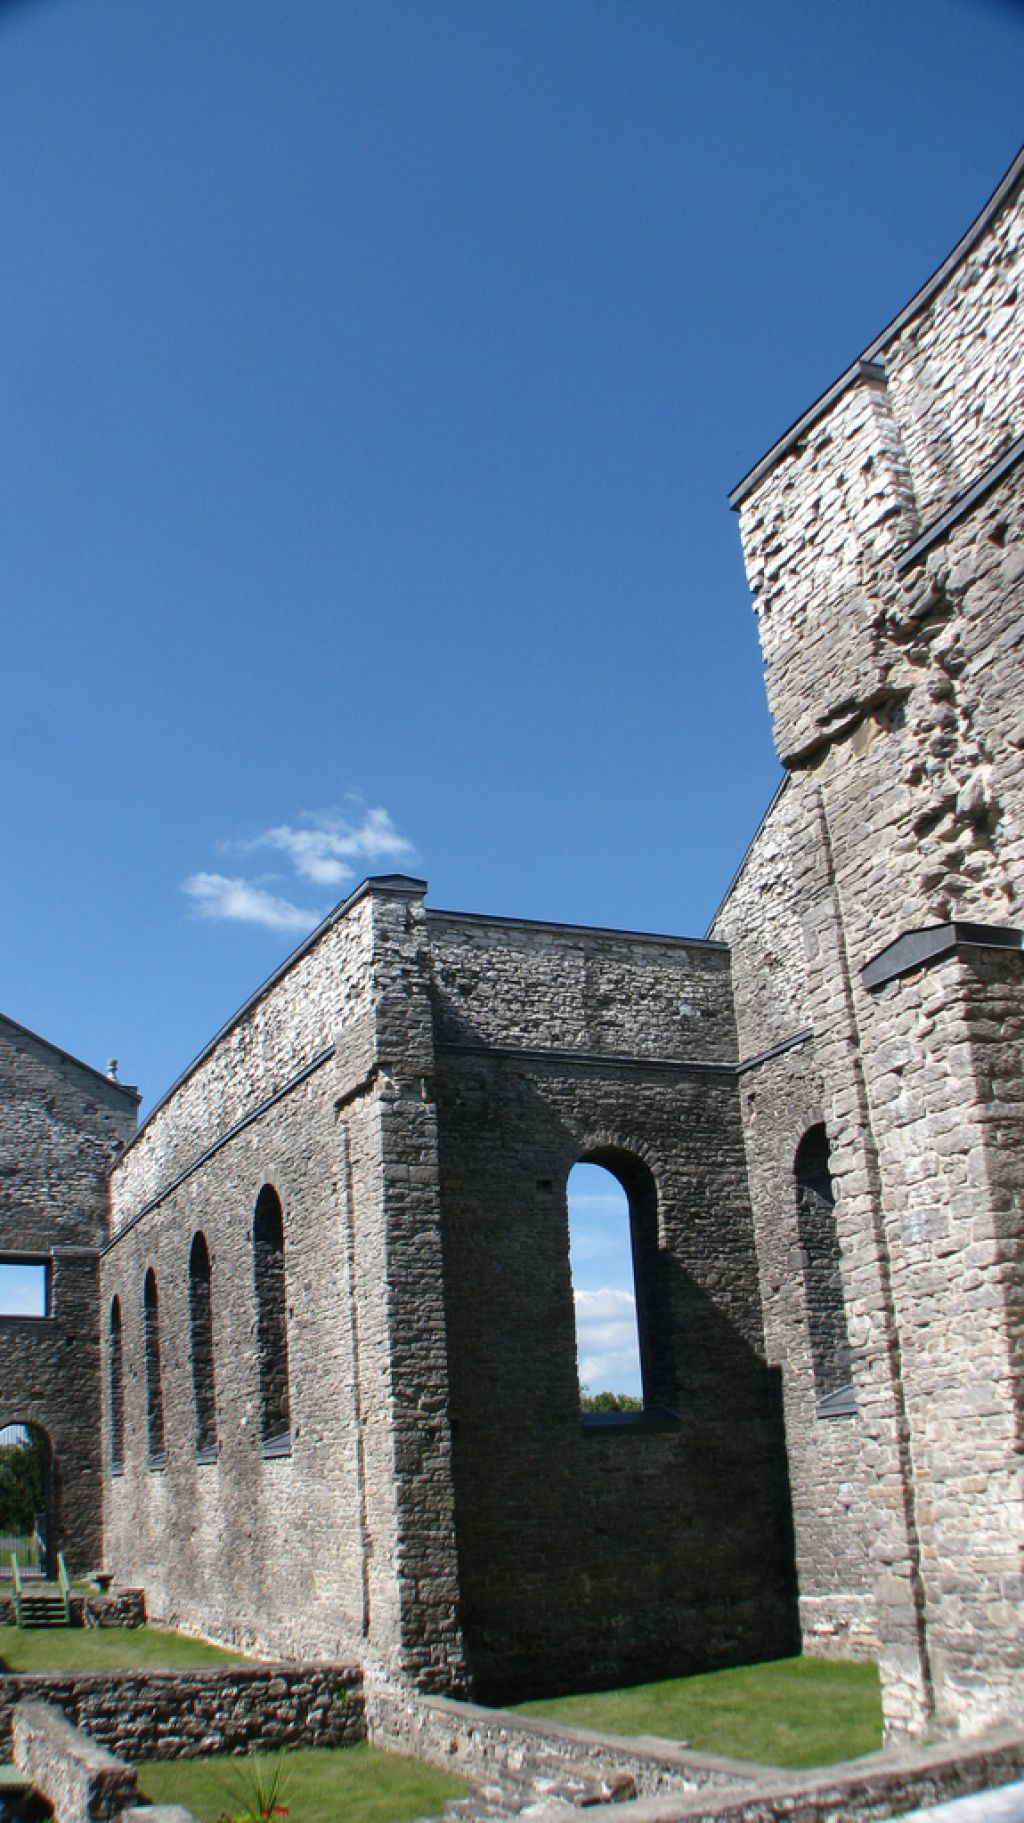 national historic site4 St. Raphaels Ruins in Ontario, Canada